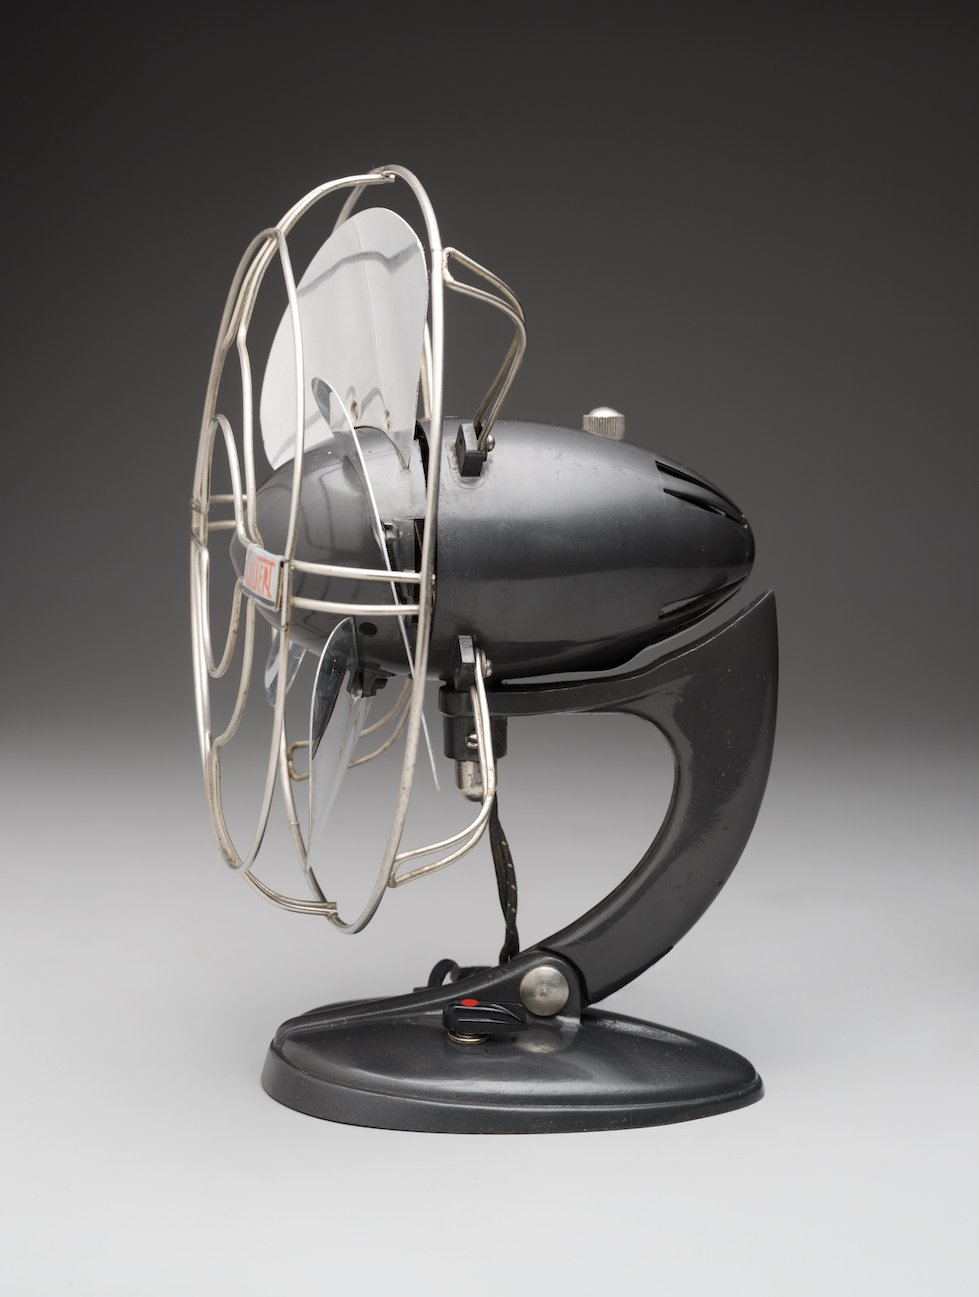 Automotive design fed into products such as the A.C. Gilbert Co. 'Airflow' Table Fan, 1937